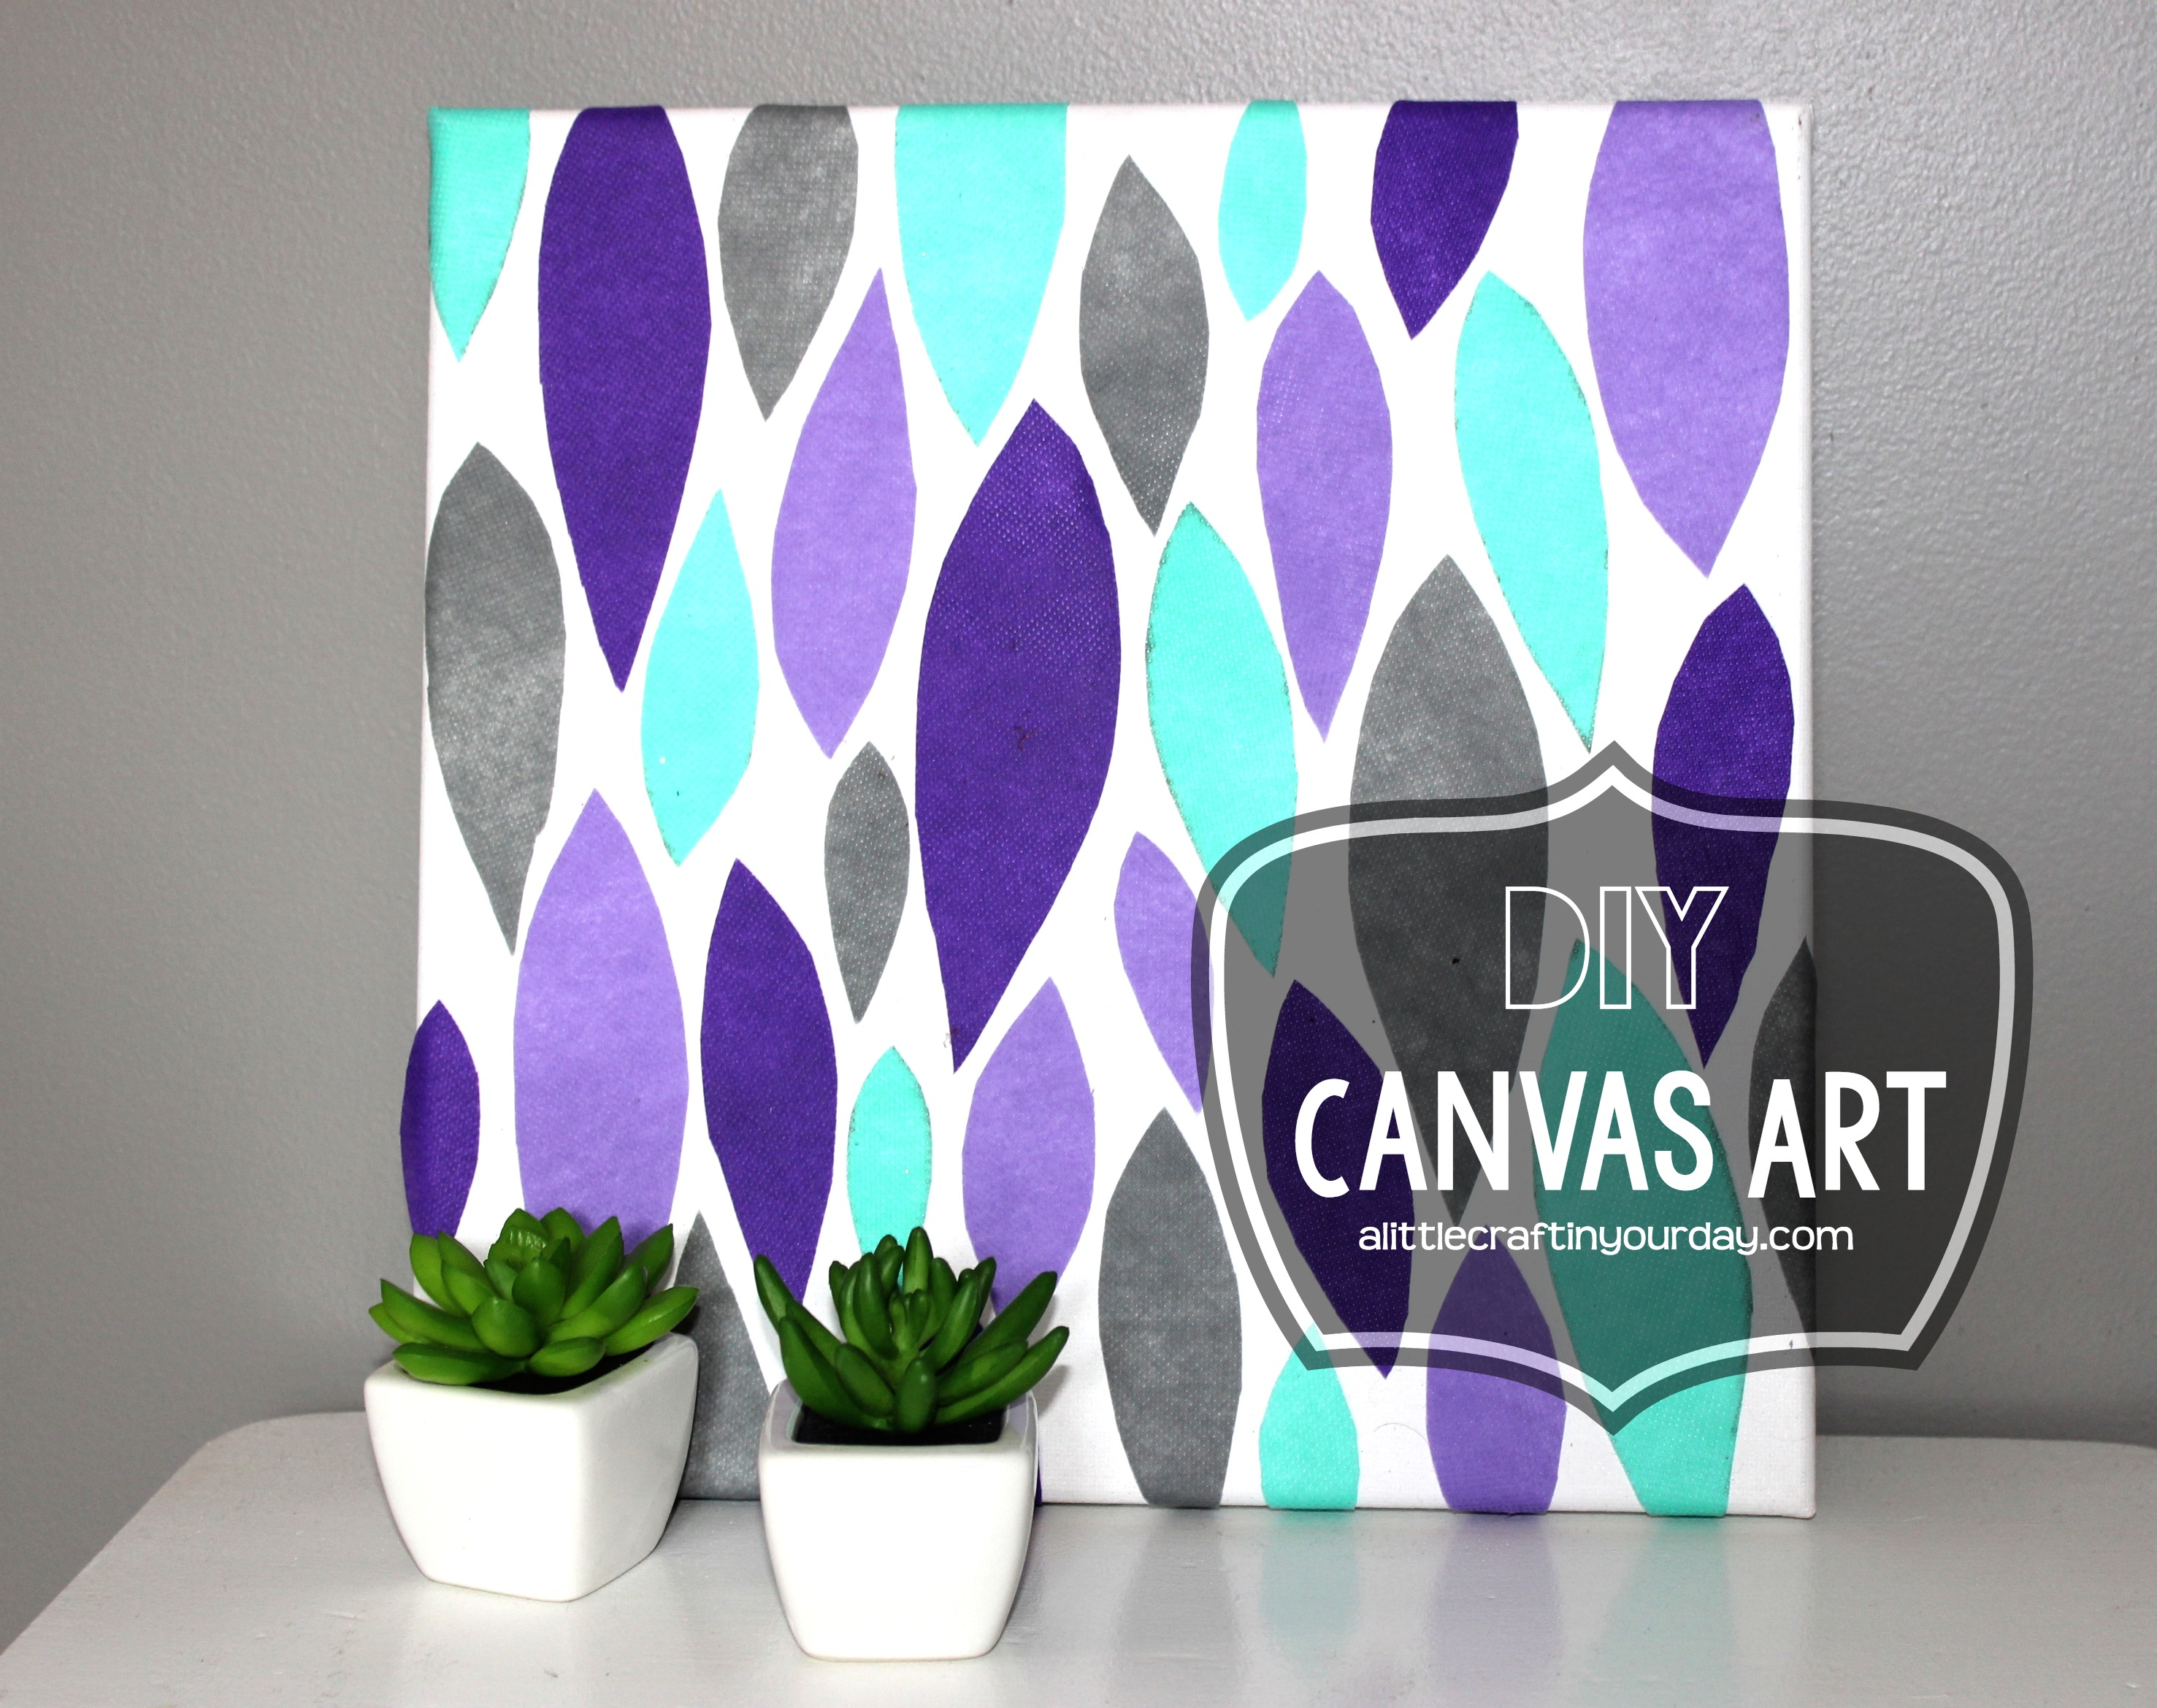 Diy Canvas Diy Canvas Art A Little Craft In Your Day